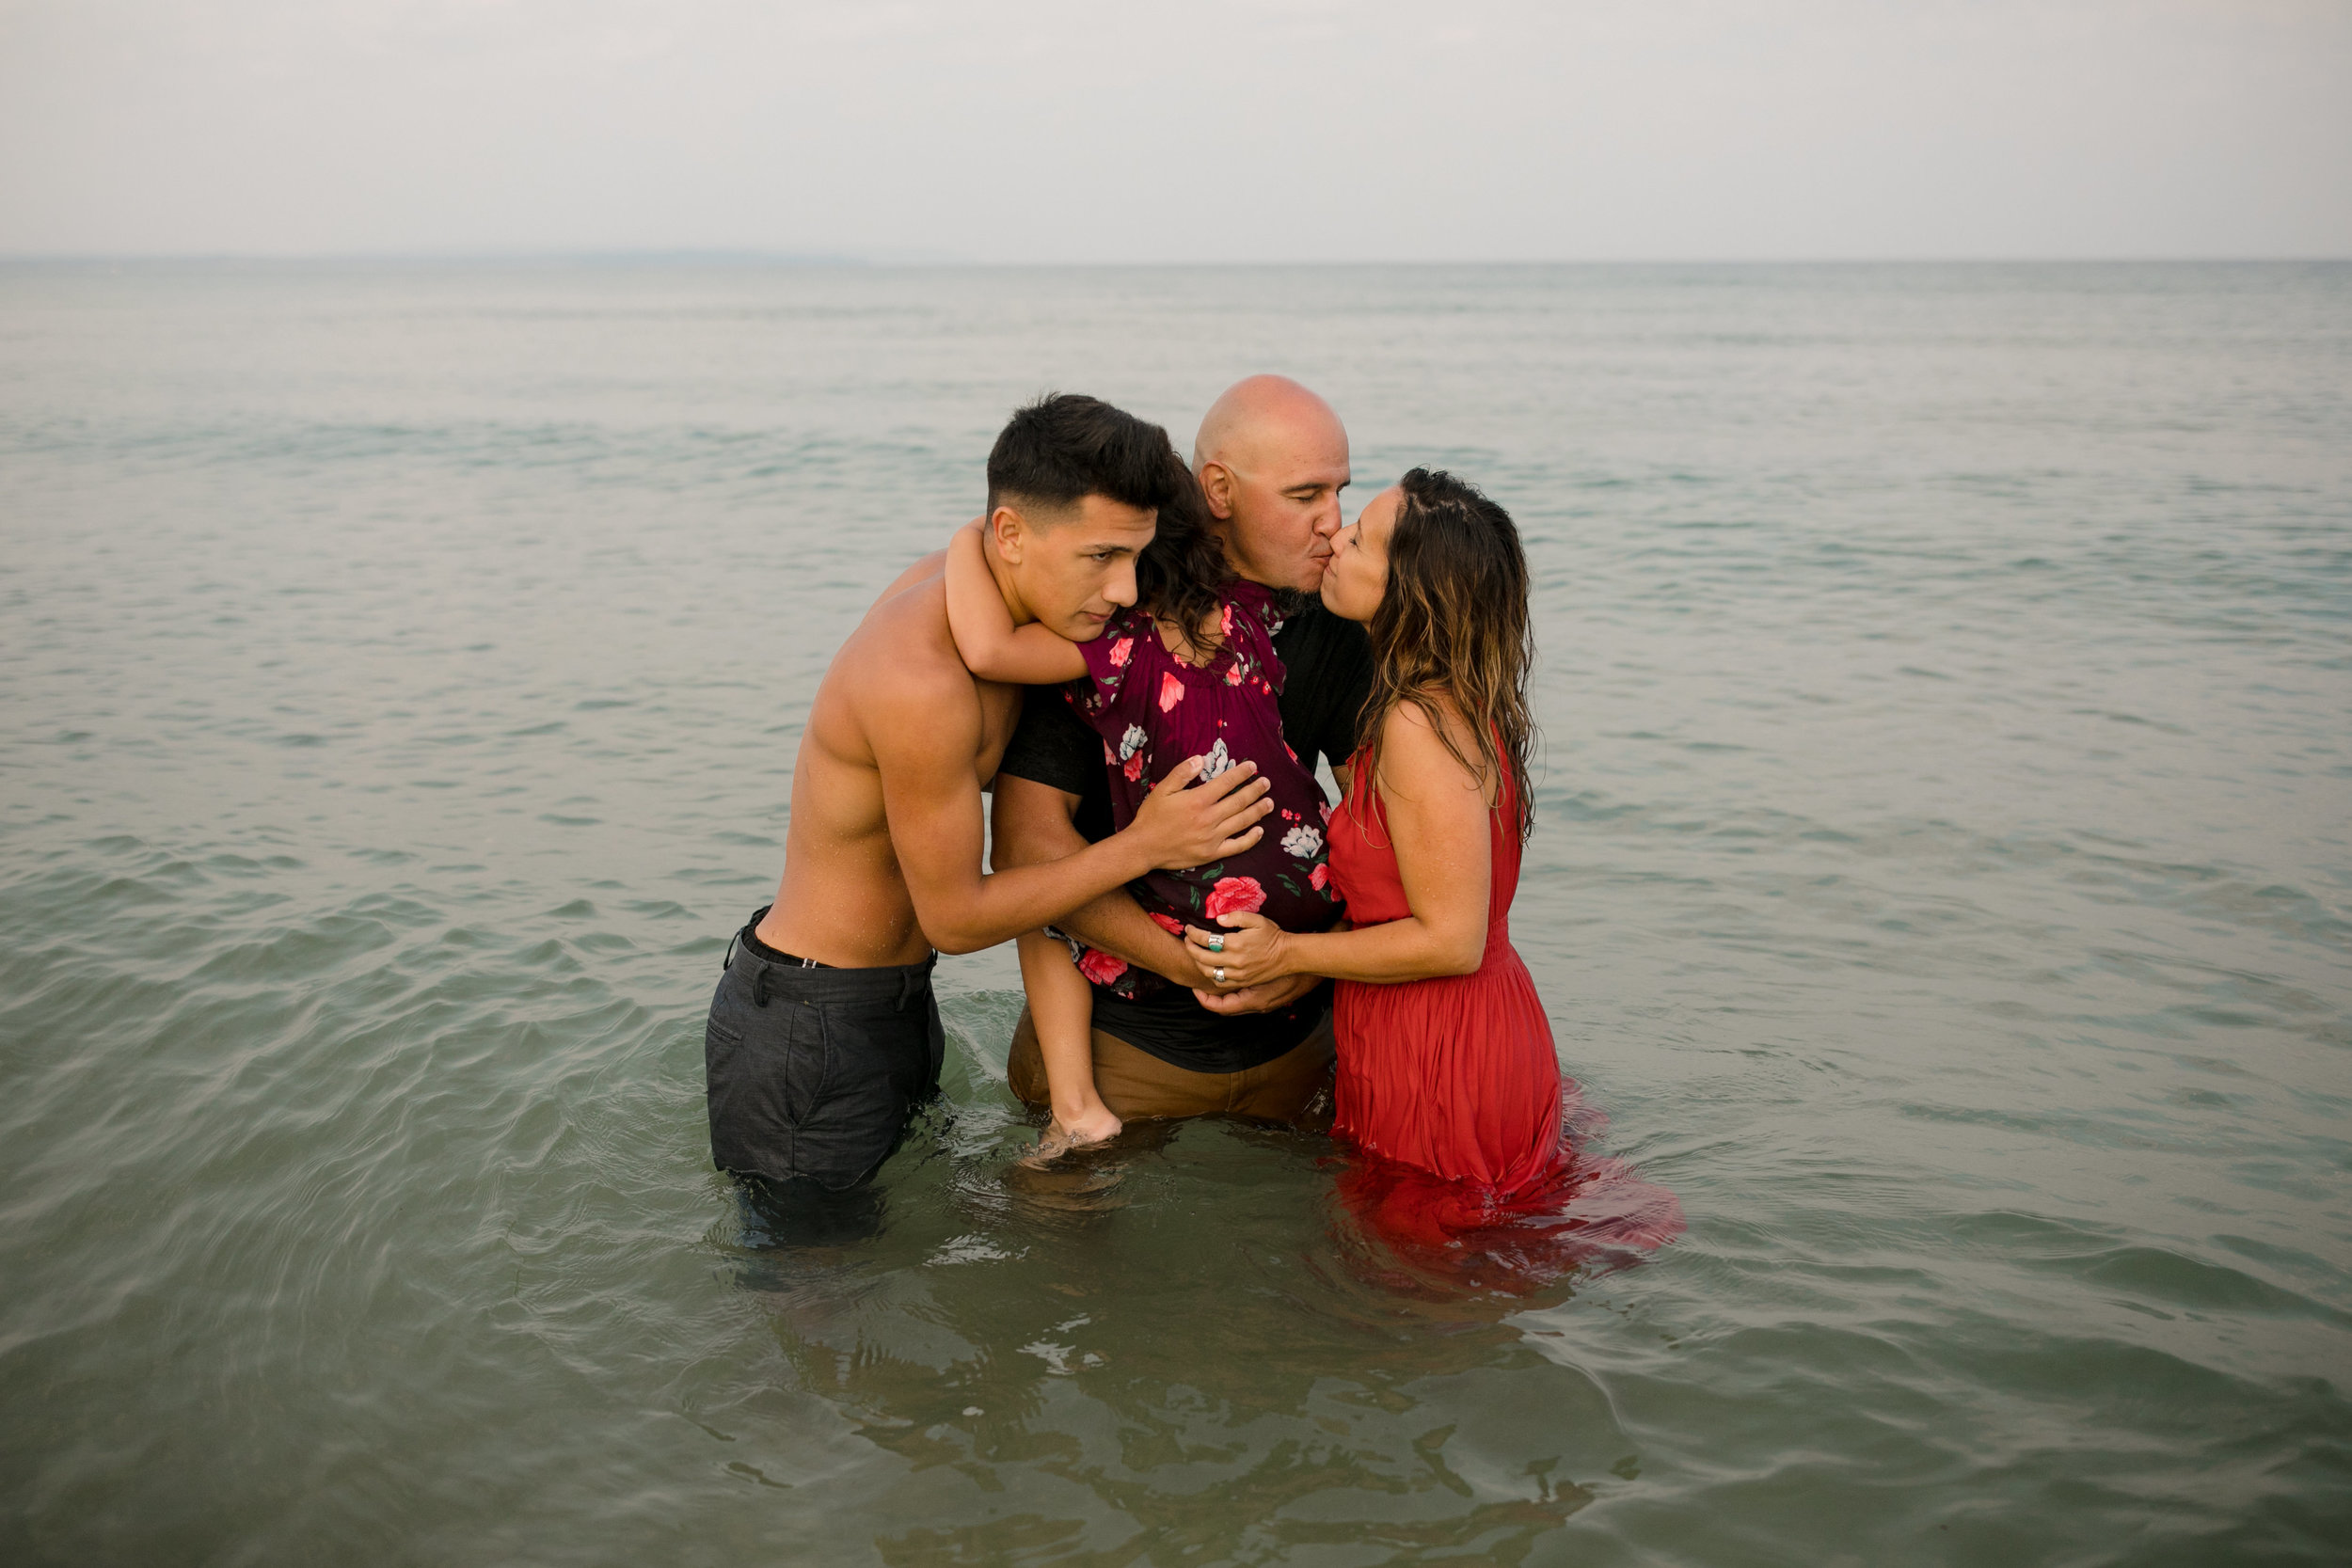 michigan-storytelling-photographer-esch-road-beach-empire-mi-santellano-family-229.jpg